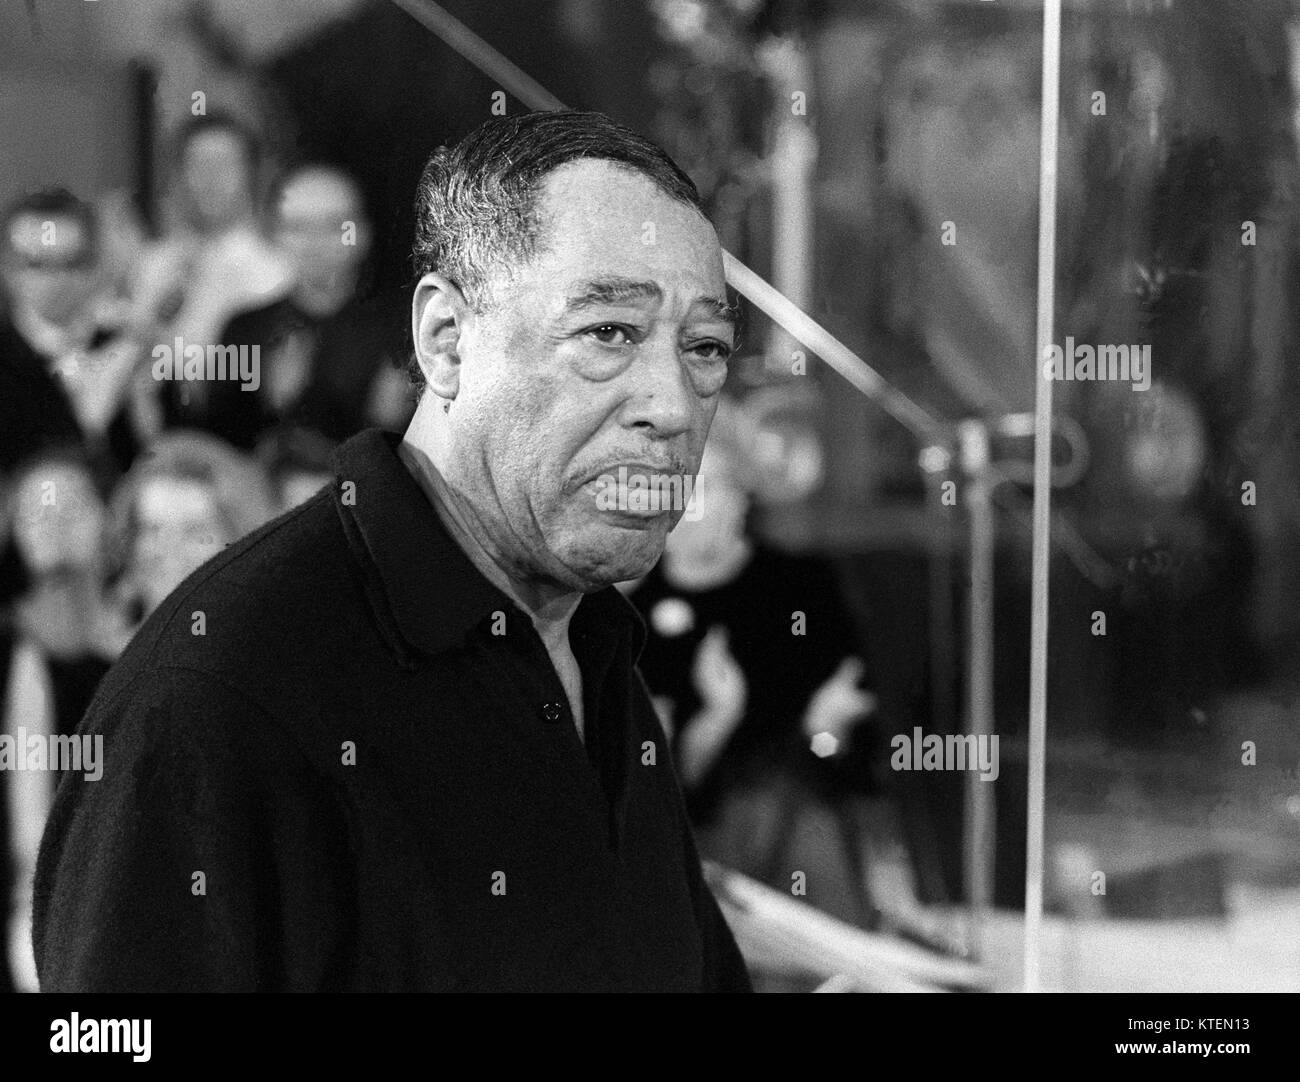 a biography of duke ellington the american jazz composer Edward kennedy duke ellington and his music have been an integral part of the american scene for most of the 20th century this interpretive biography offers insights into ellington's enduring appeal, not only as a composer and piano-playing leader of a jazz orchestra, but as a cultural icon.